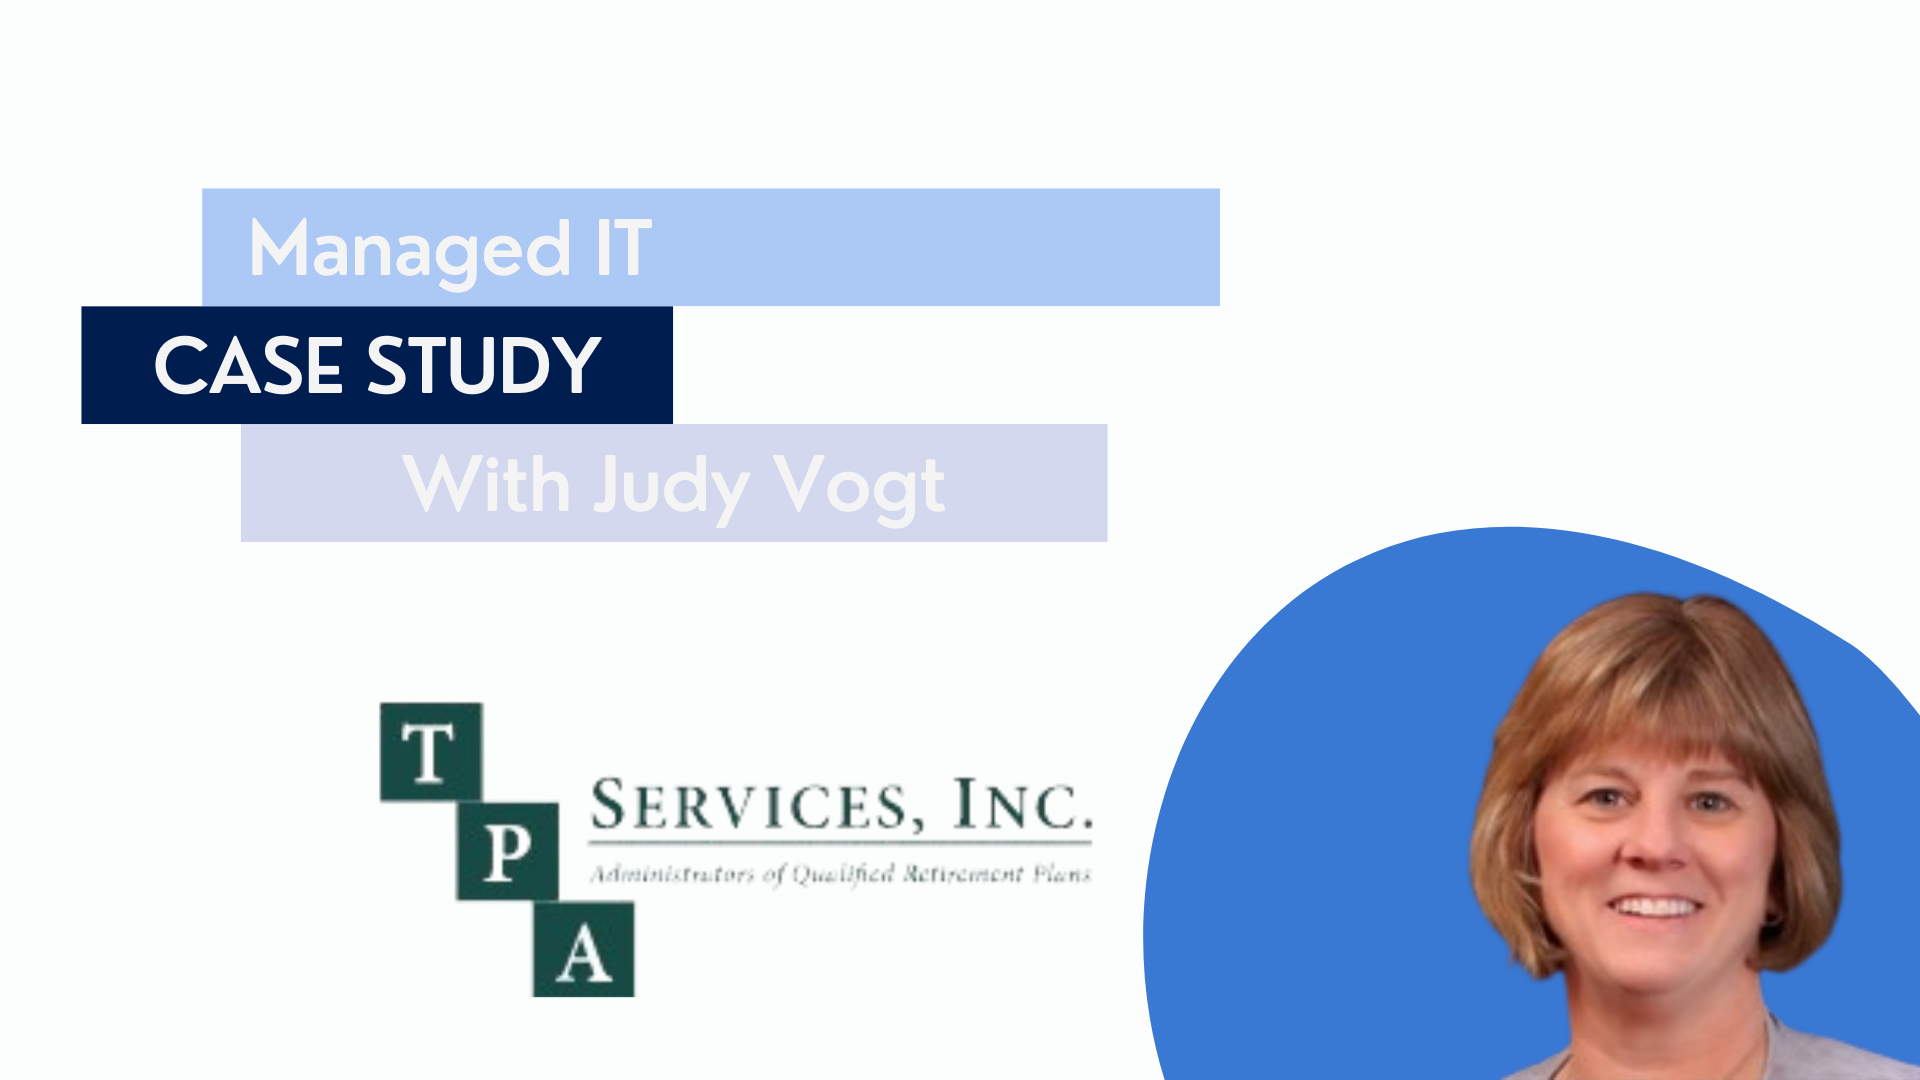 Judy Vogt, Managed IT, TPA Services